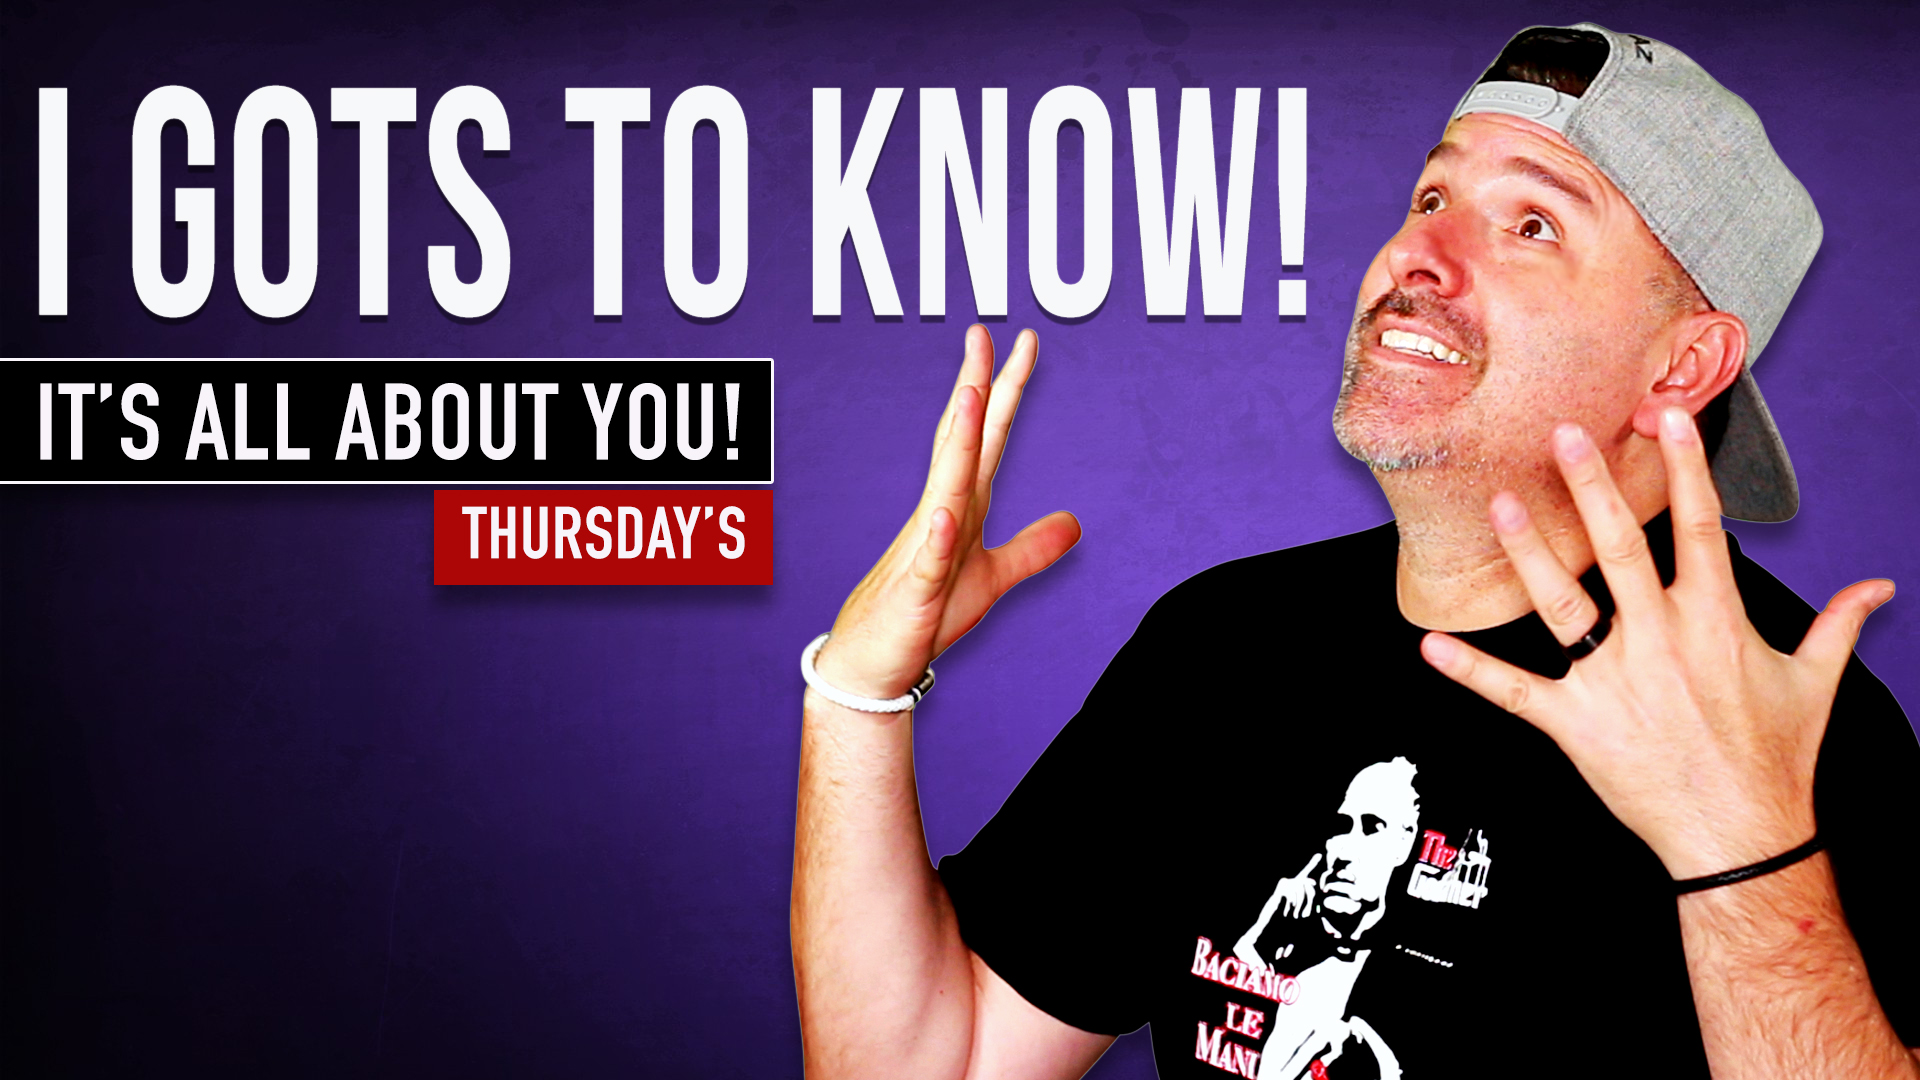 I GOTS TO KNOW! HOSTED BY KID CORONA